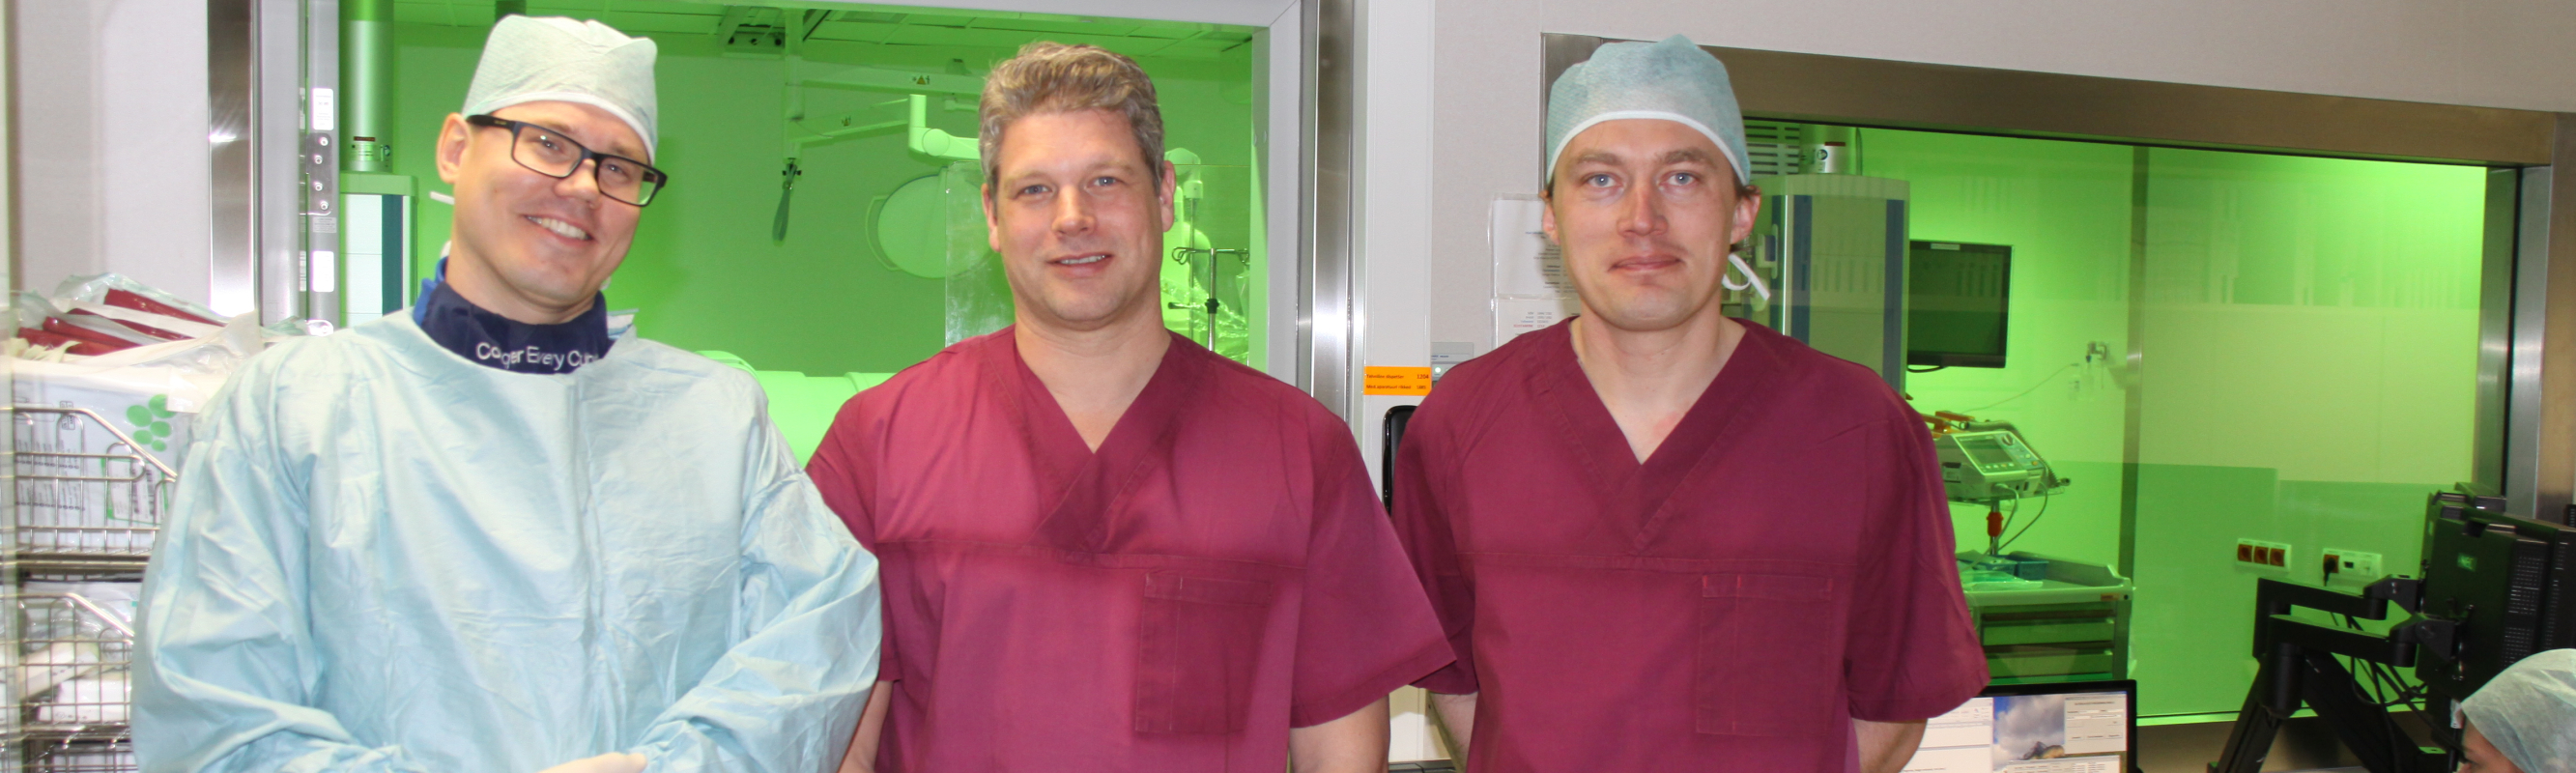 Dr Hanni, dr Erik Wissner from Germany and dr Kampus